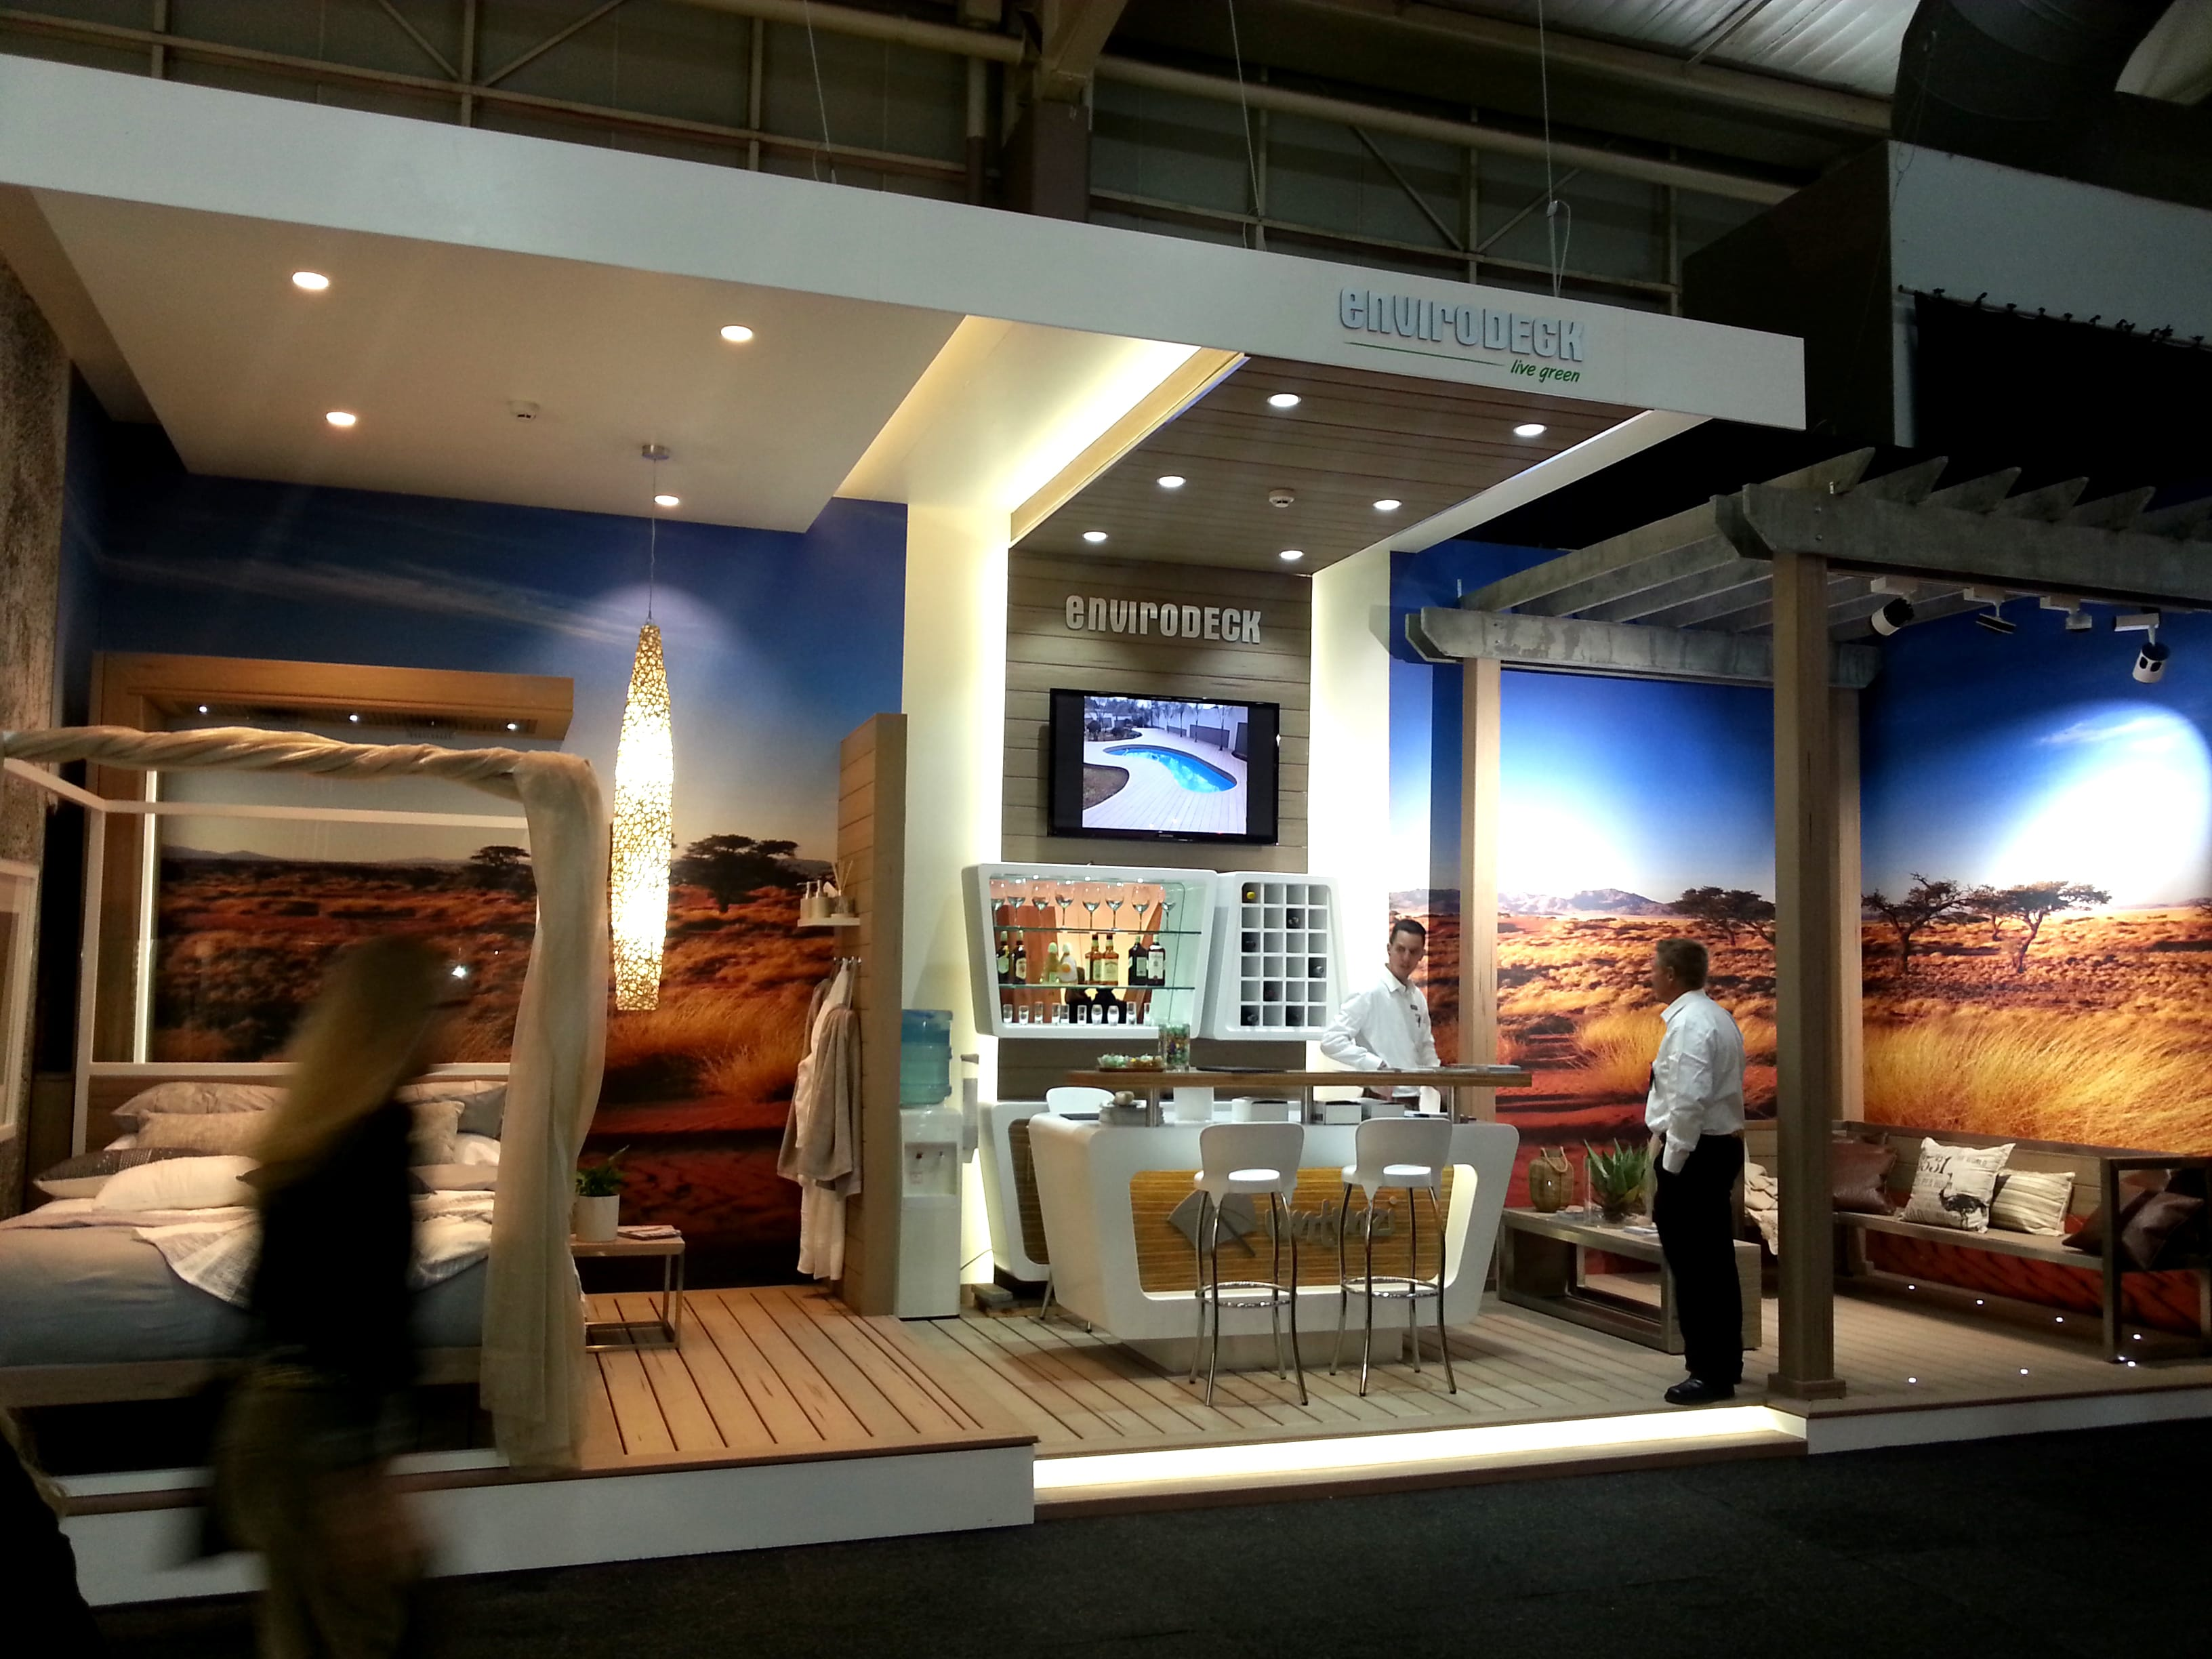 Exhibition Stands - Envirodeck